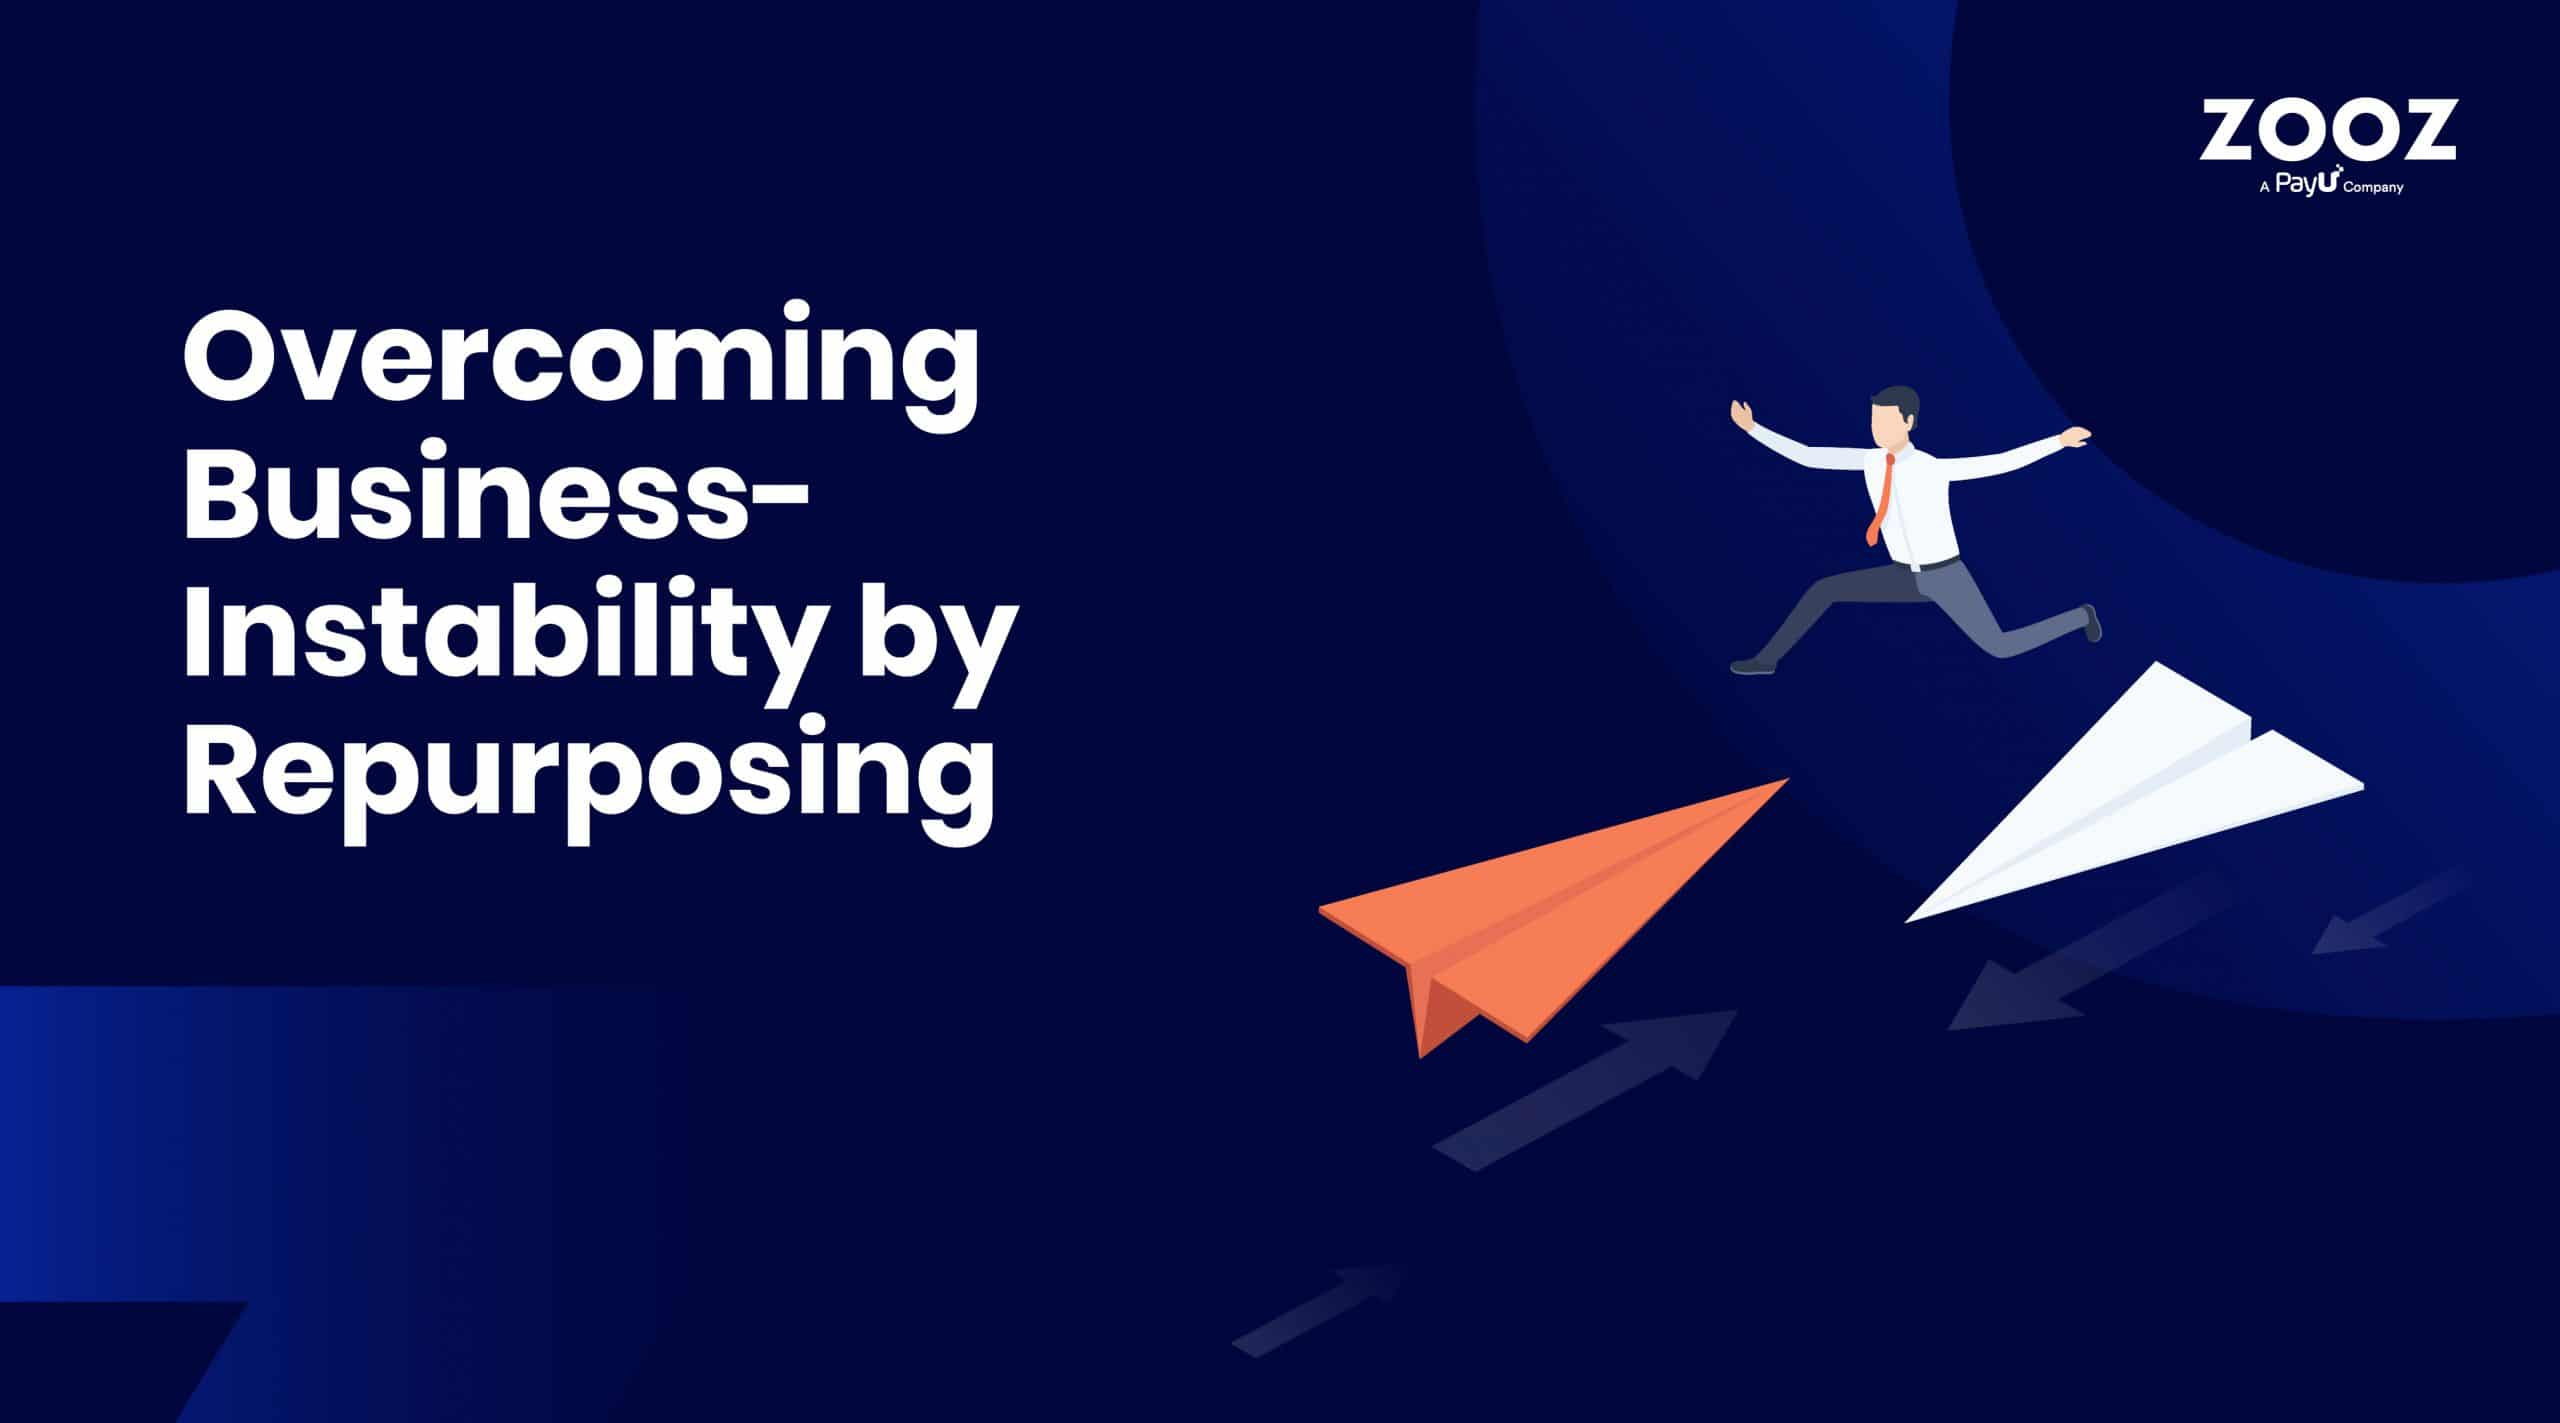 overcoming business instability by repurposing